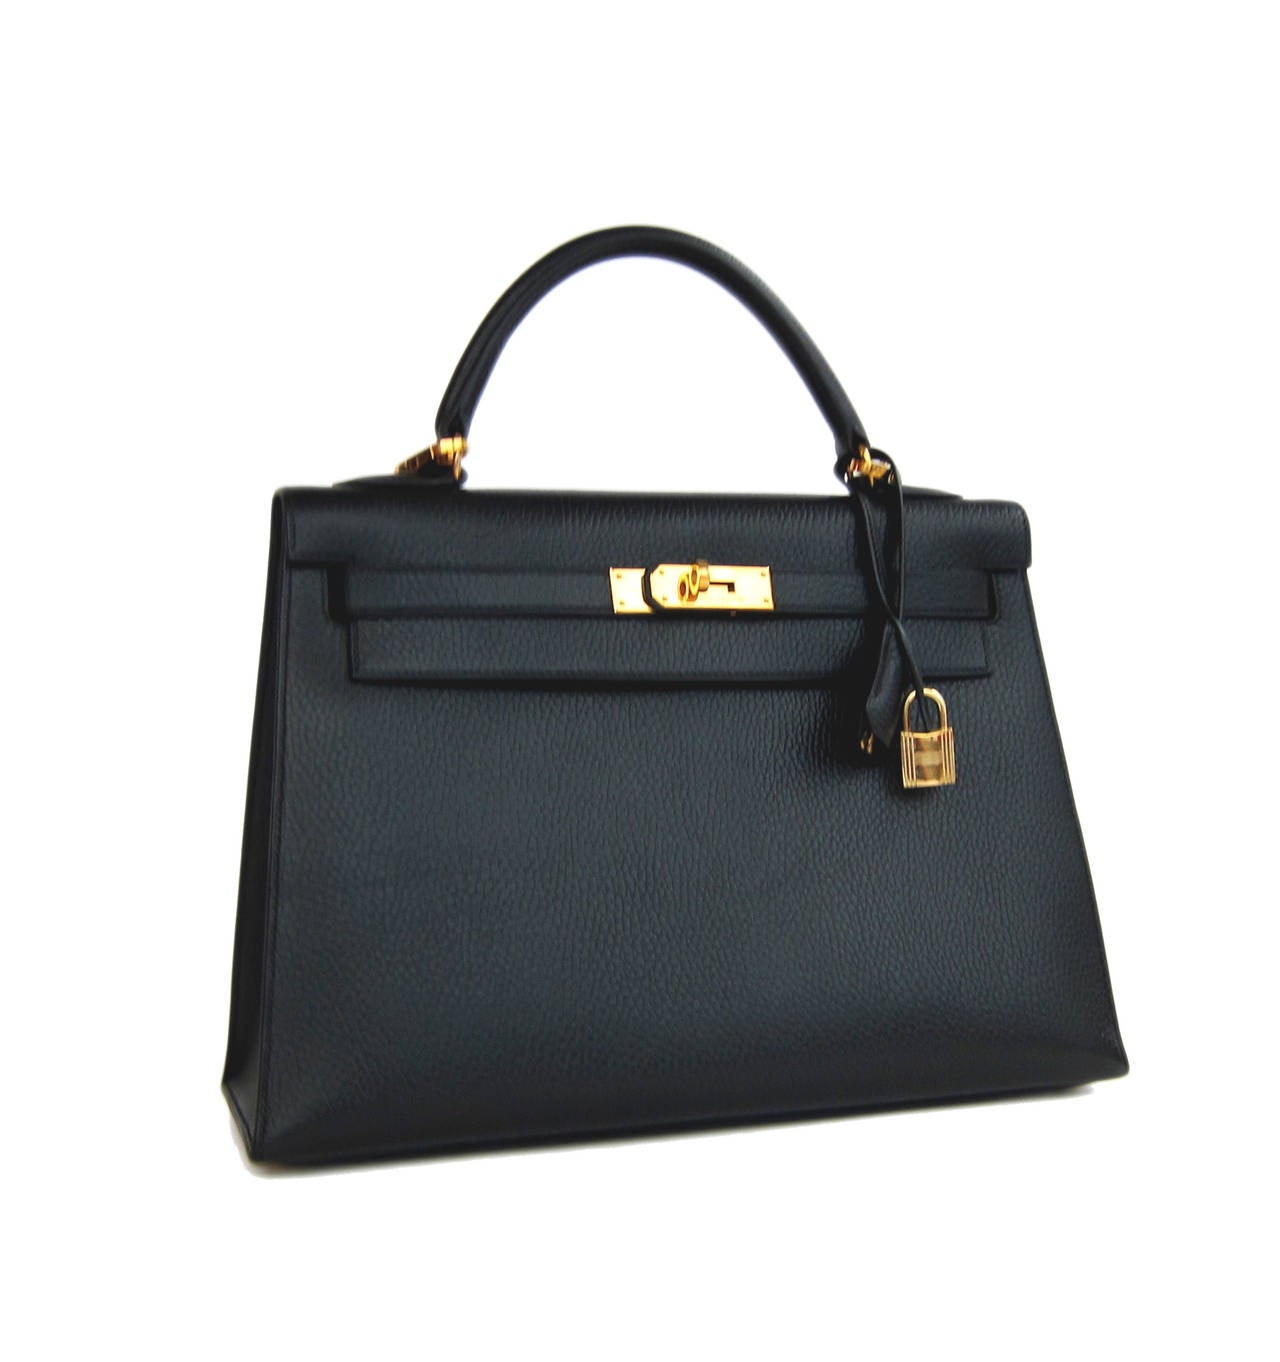 20aca013f563 Hermes 32cm Sellier Black Gold GHW Vache Ardenne Leather Kelly RARE Hermes  32cm Black Sellier Kelly